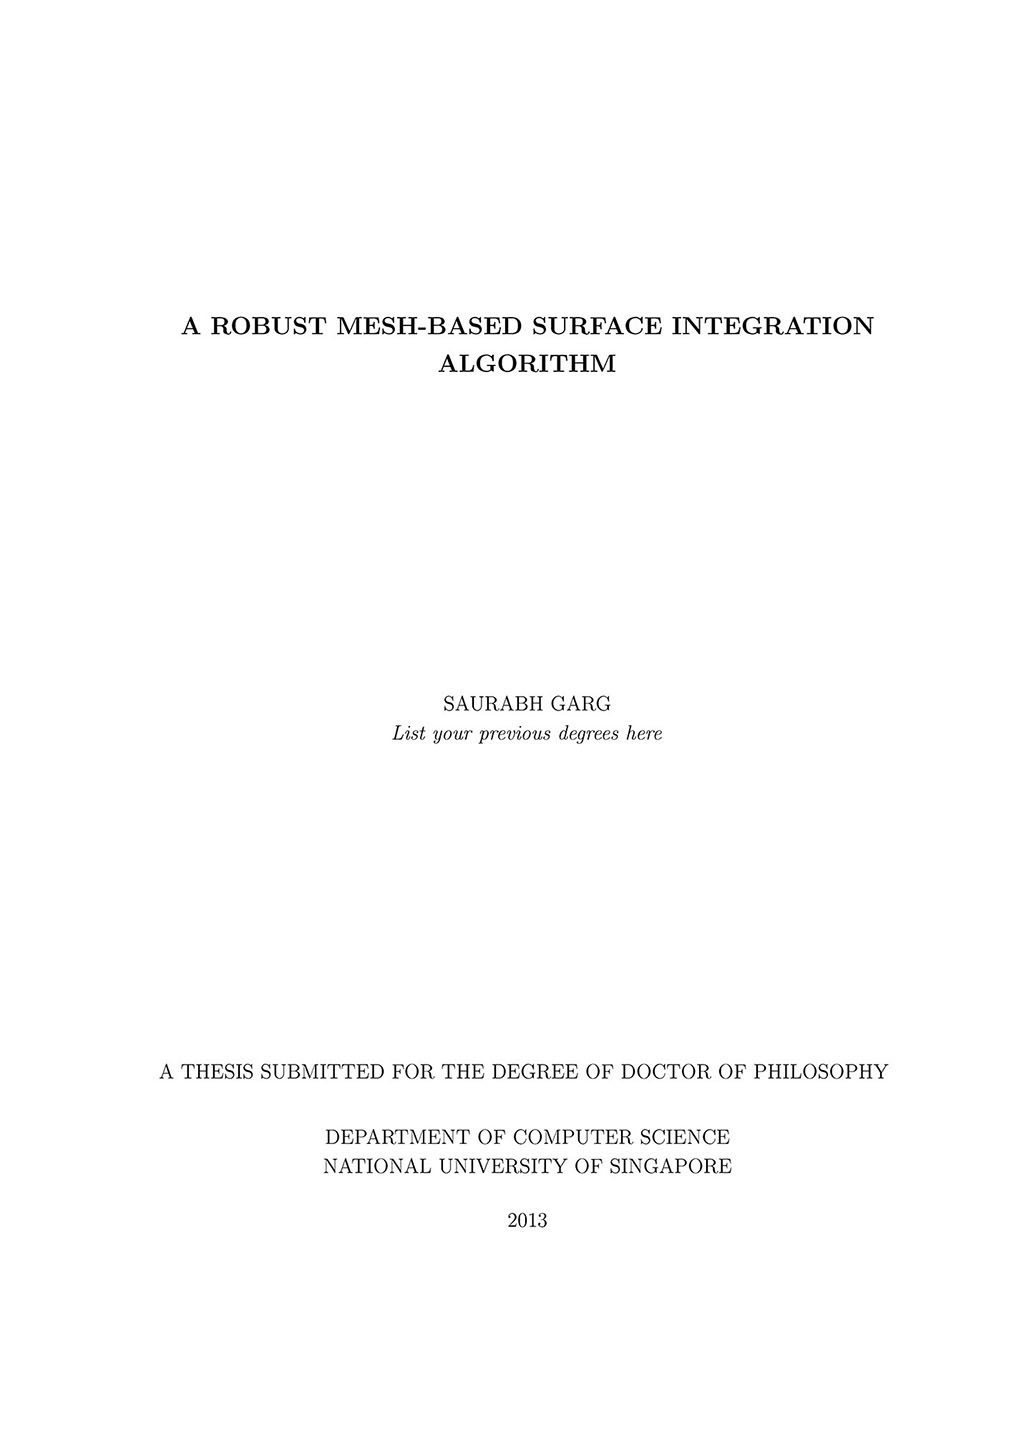 Phd thesis dissertation um